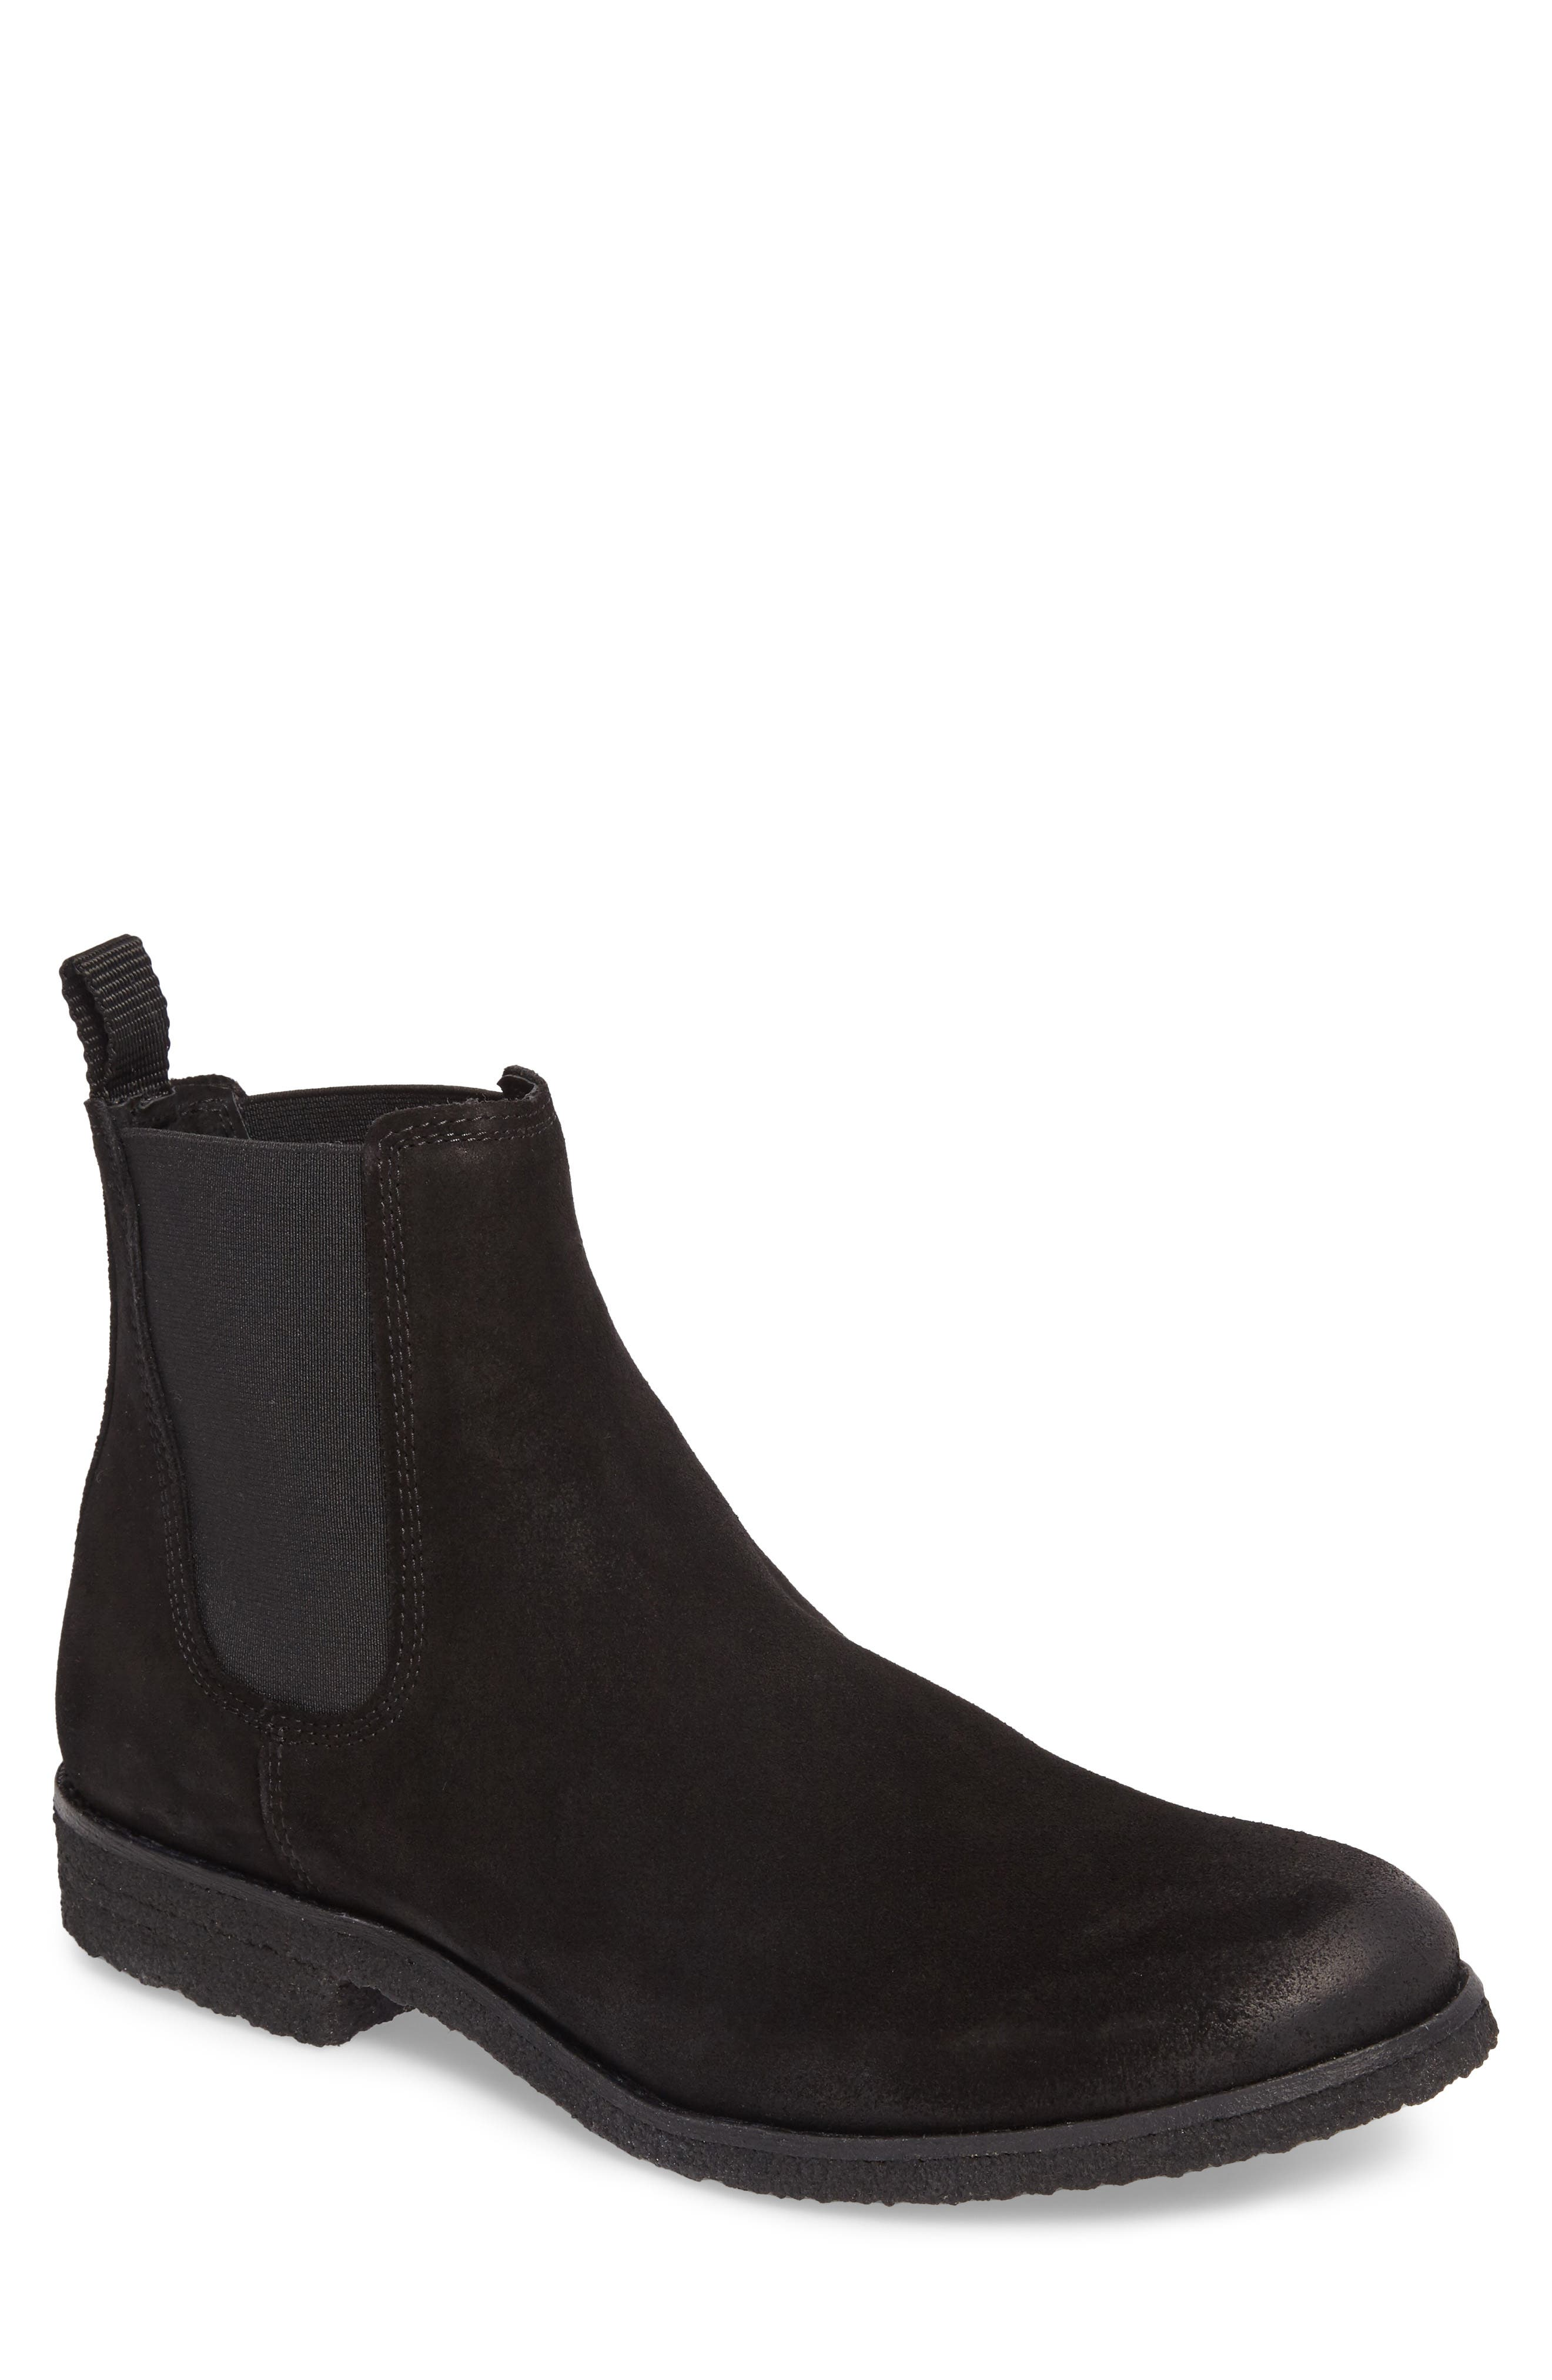 Jared Chelsea Boot,                             Main thumbnail 1, color,                             Black Suede